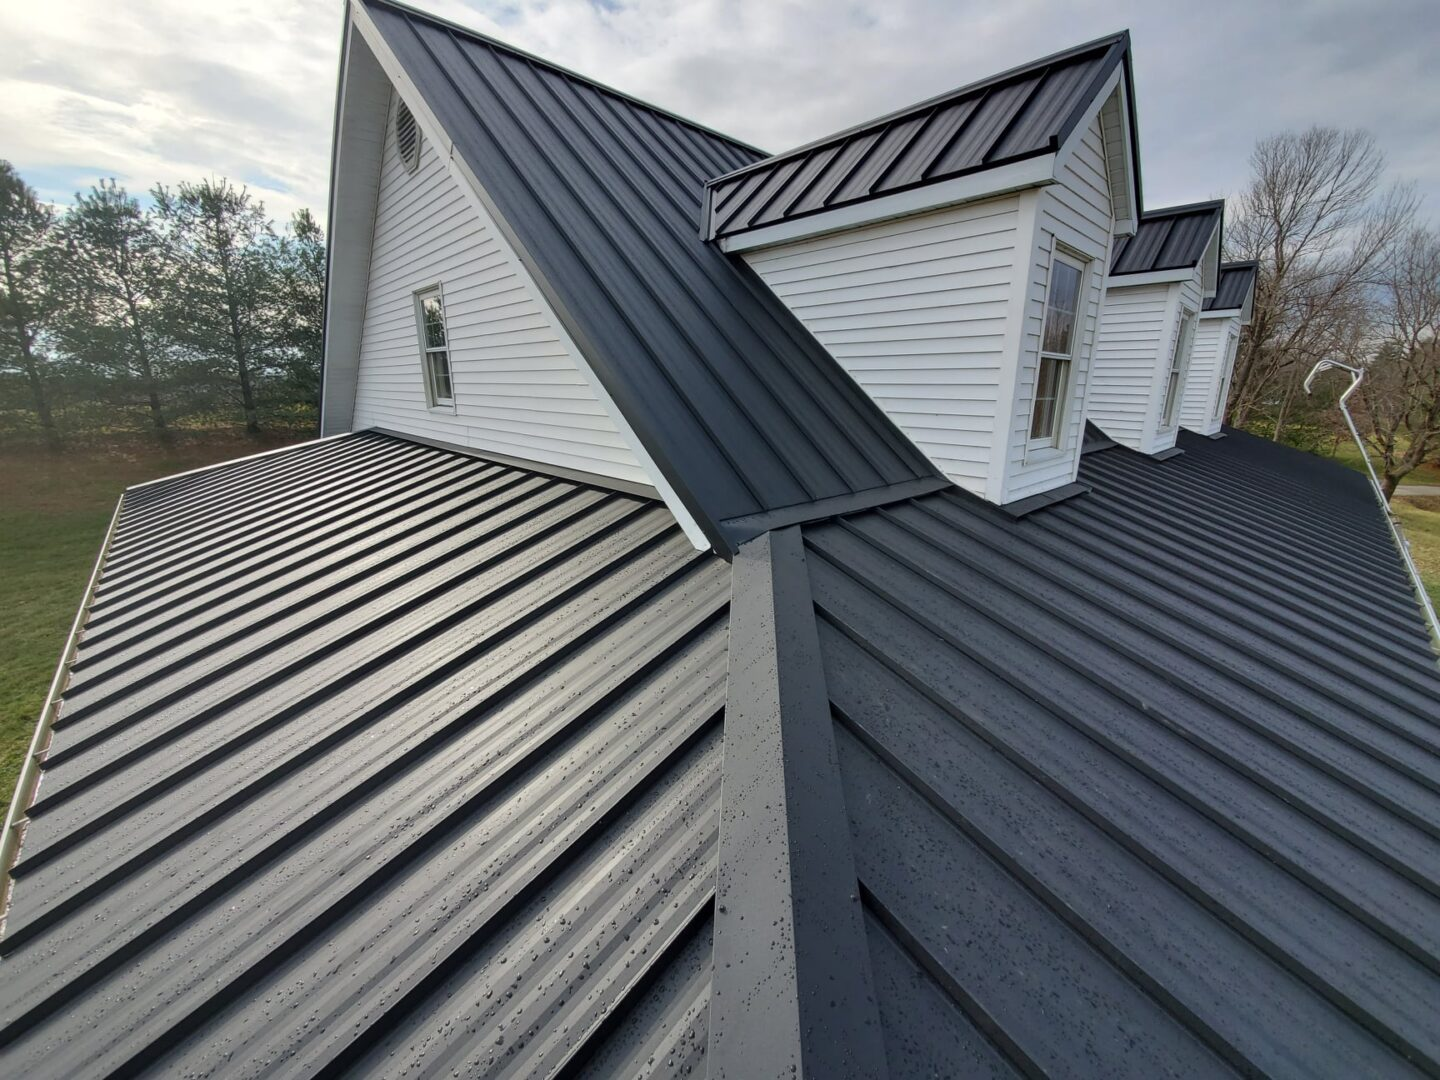 A building's roof